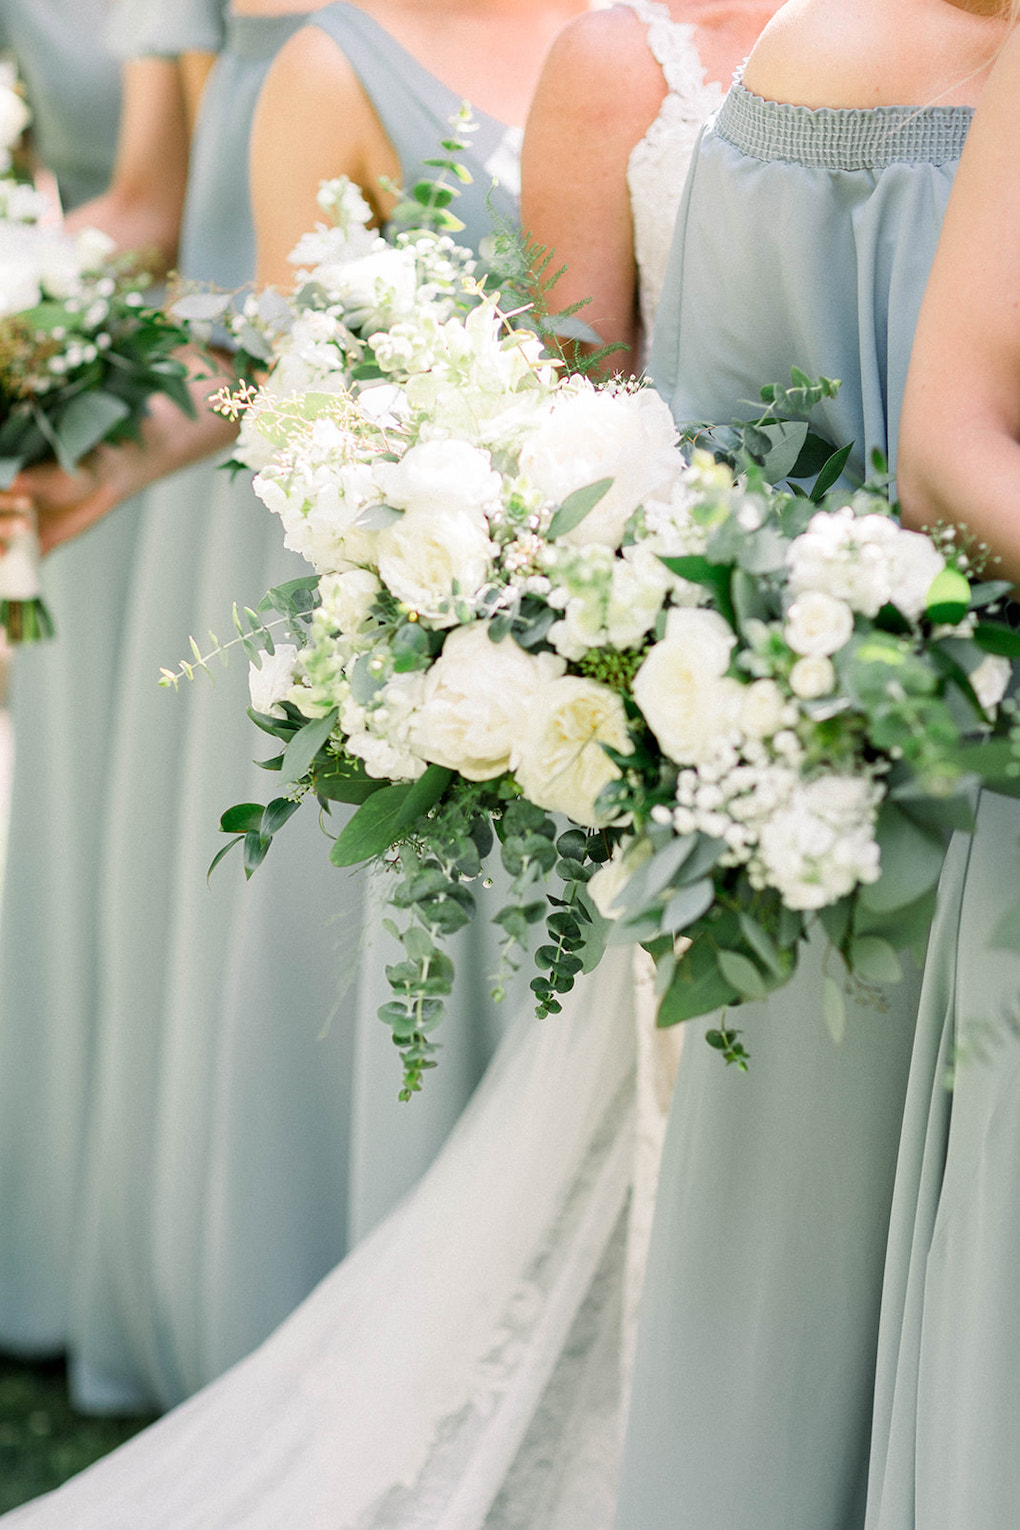 Bridesmaid photos with bouquets: Pittsburgh Botanic Garden wedding planned by Exhale Events. See more wedding inspiration at exhale-events.com!